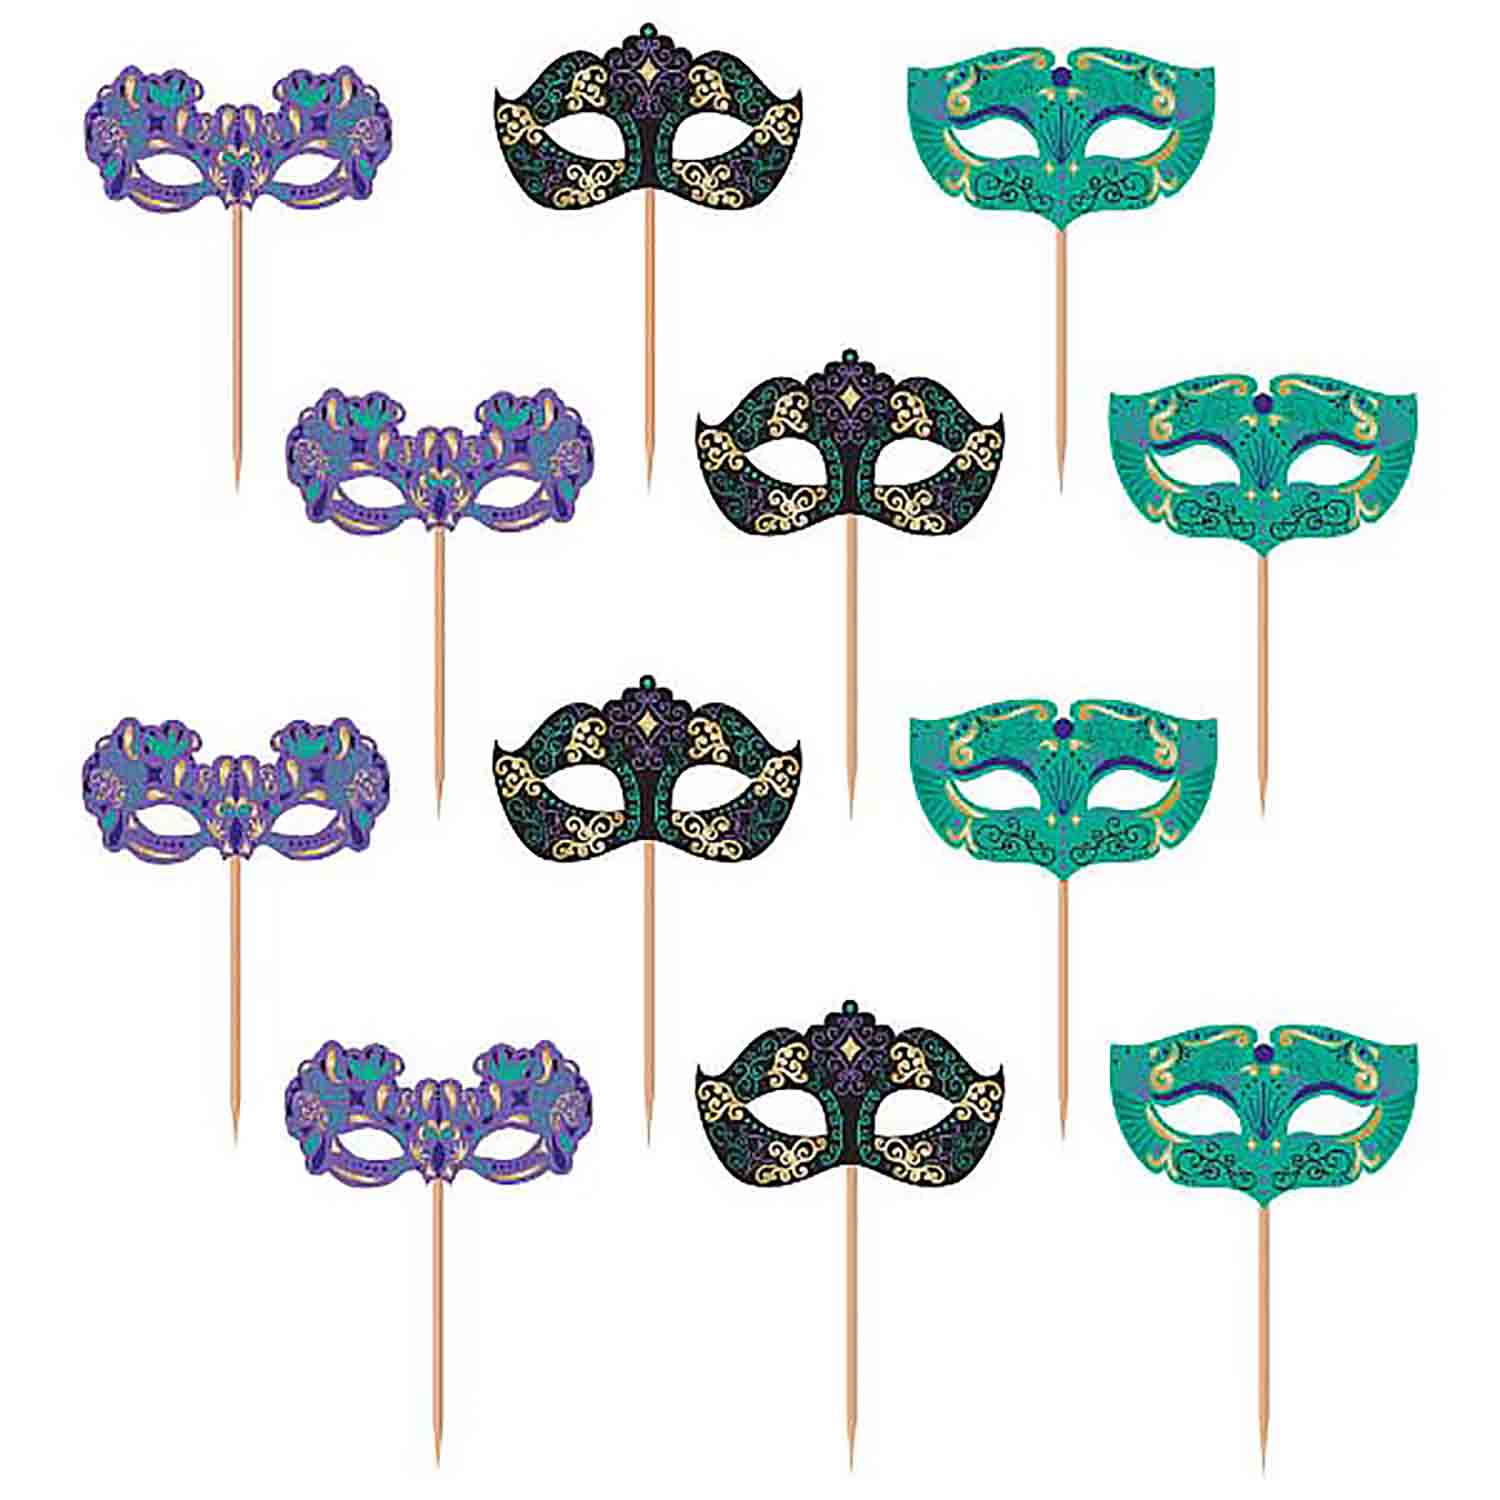 Mardi Gras Cake and Cupcake Toppers and Decorations